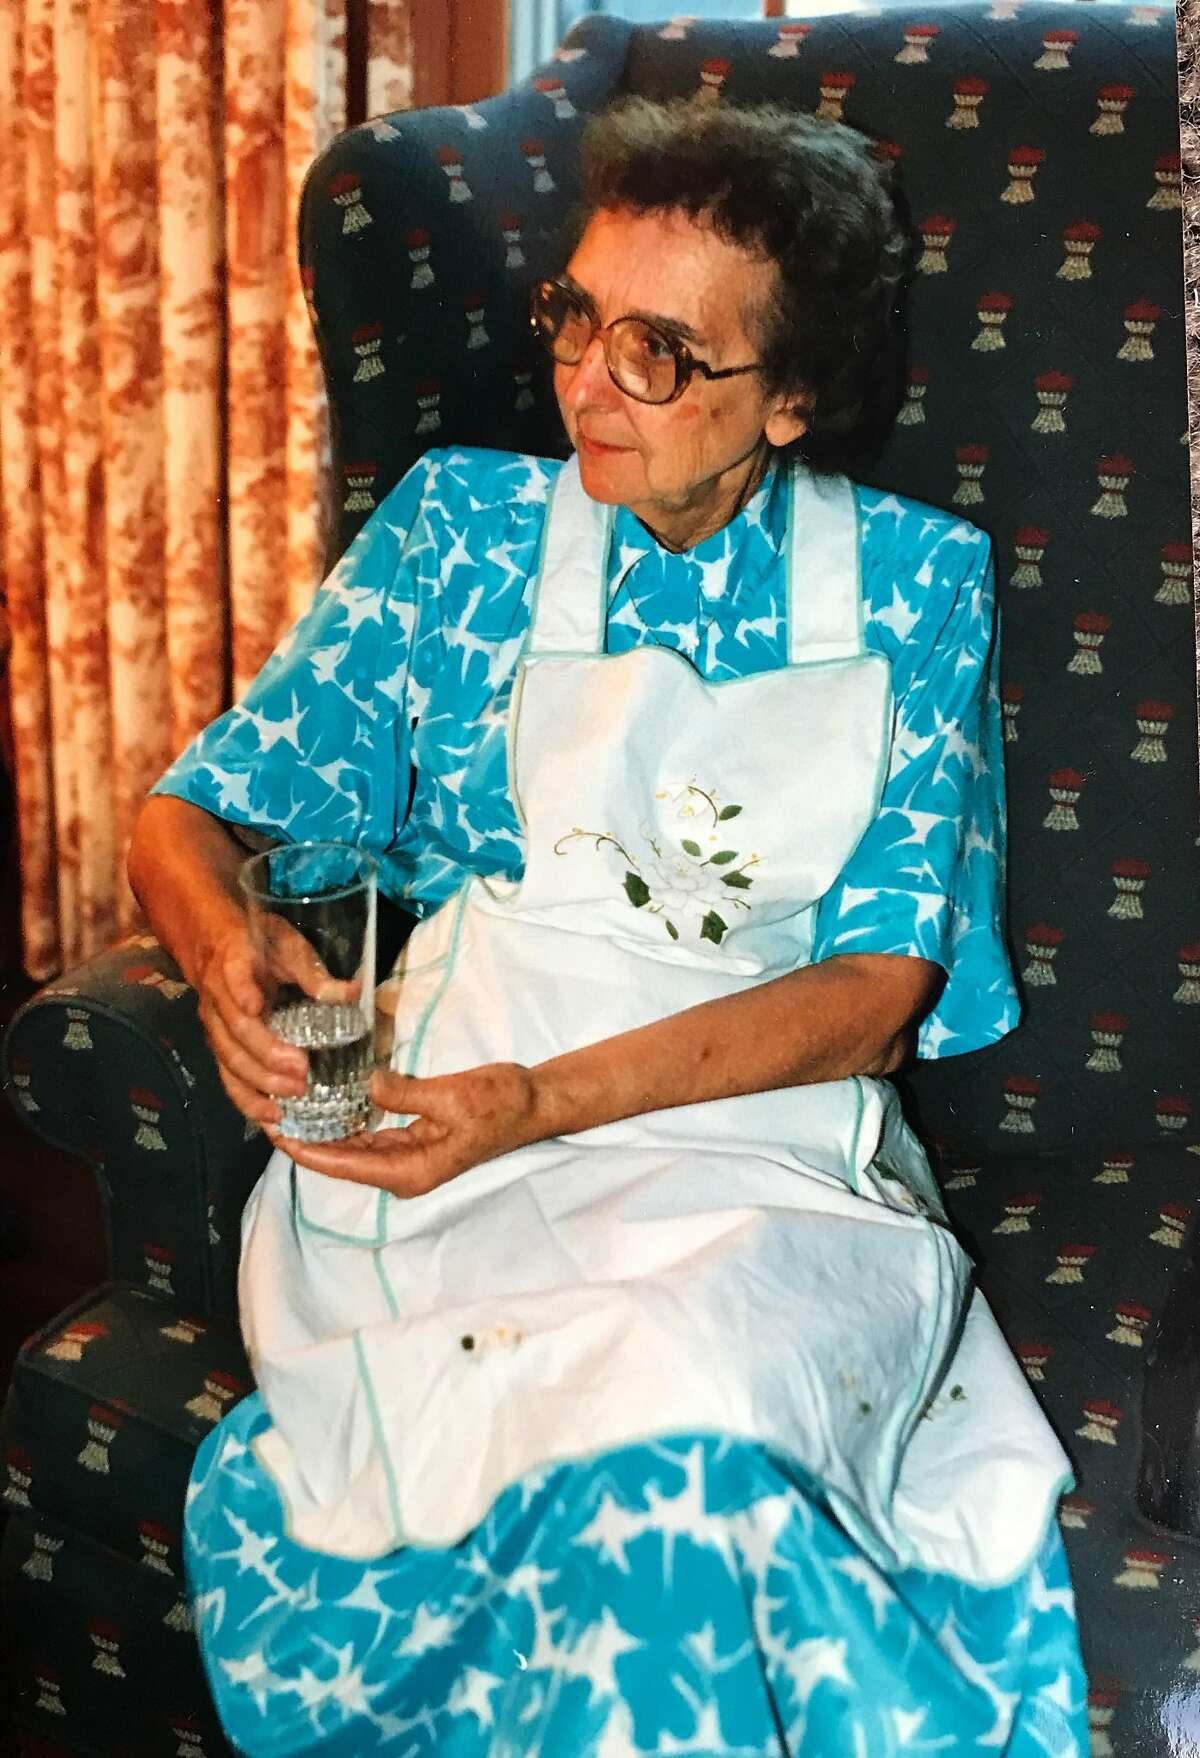 Family photos of Vernice Kelley, Esther Mobley's maternal grandmother. Vernice was a great Southern cook.